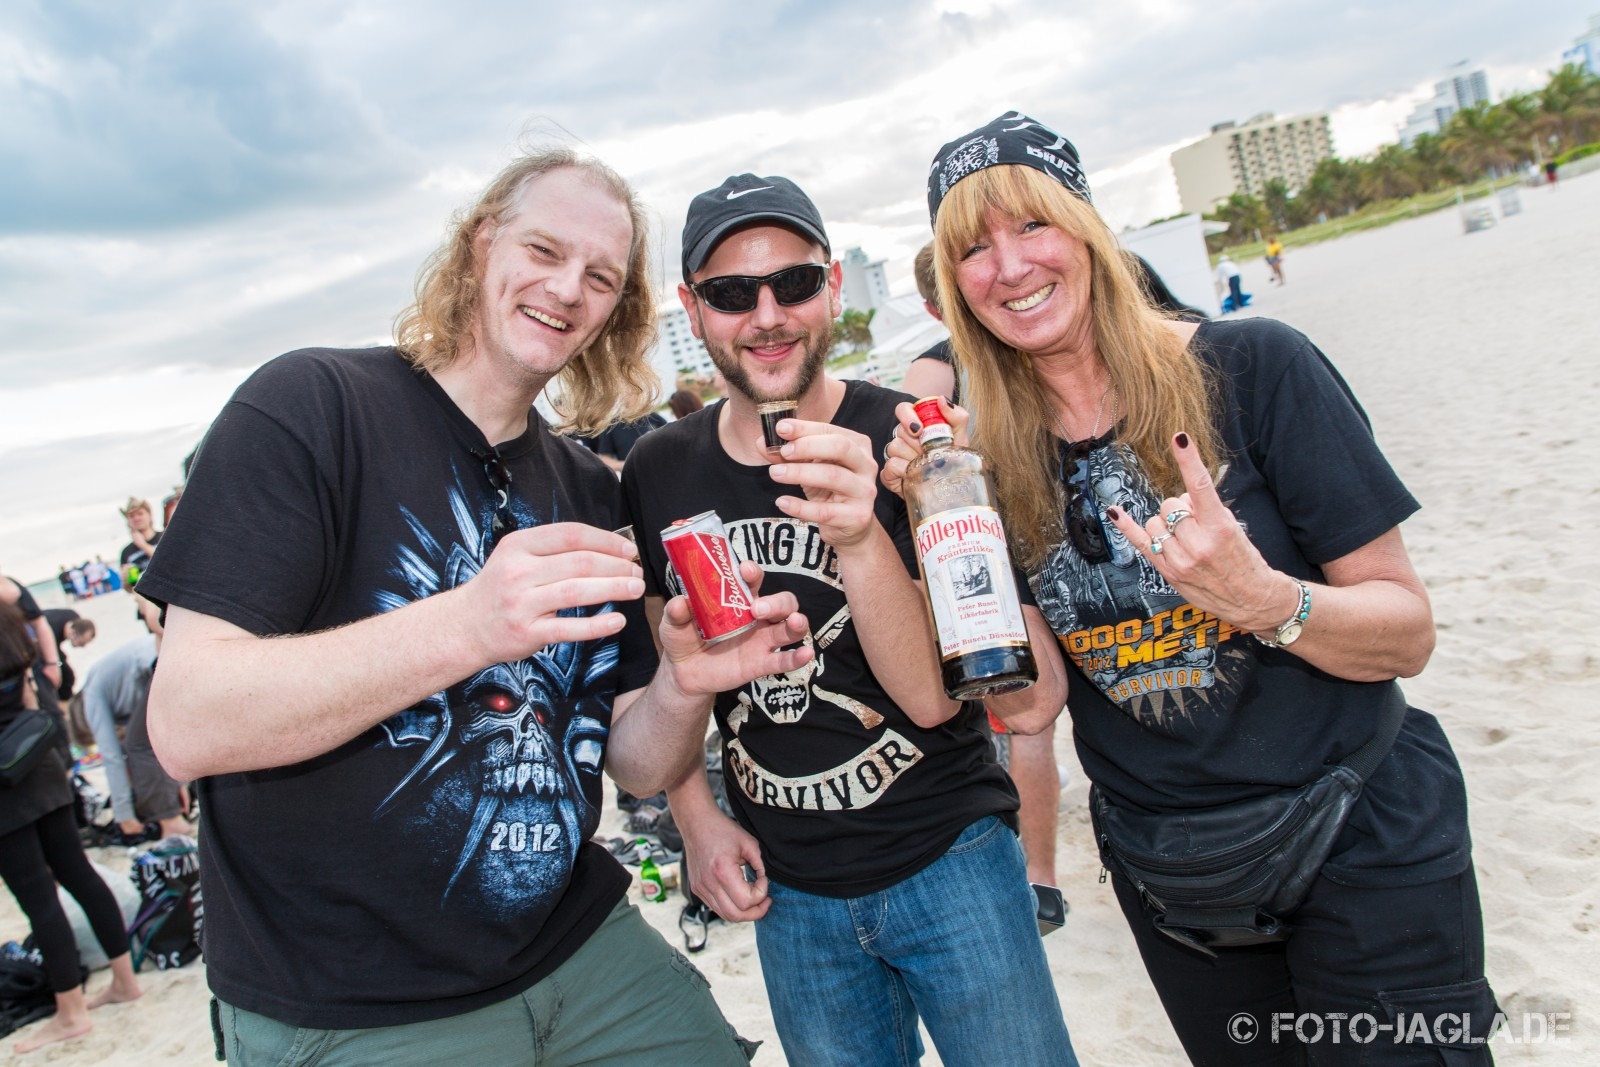 70000 Tons of Metal 2014 ::. Beachparty @ South Beach, Miami